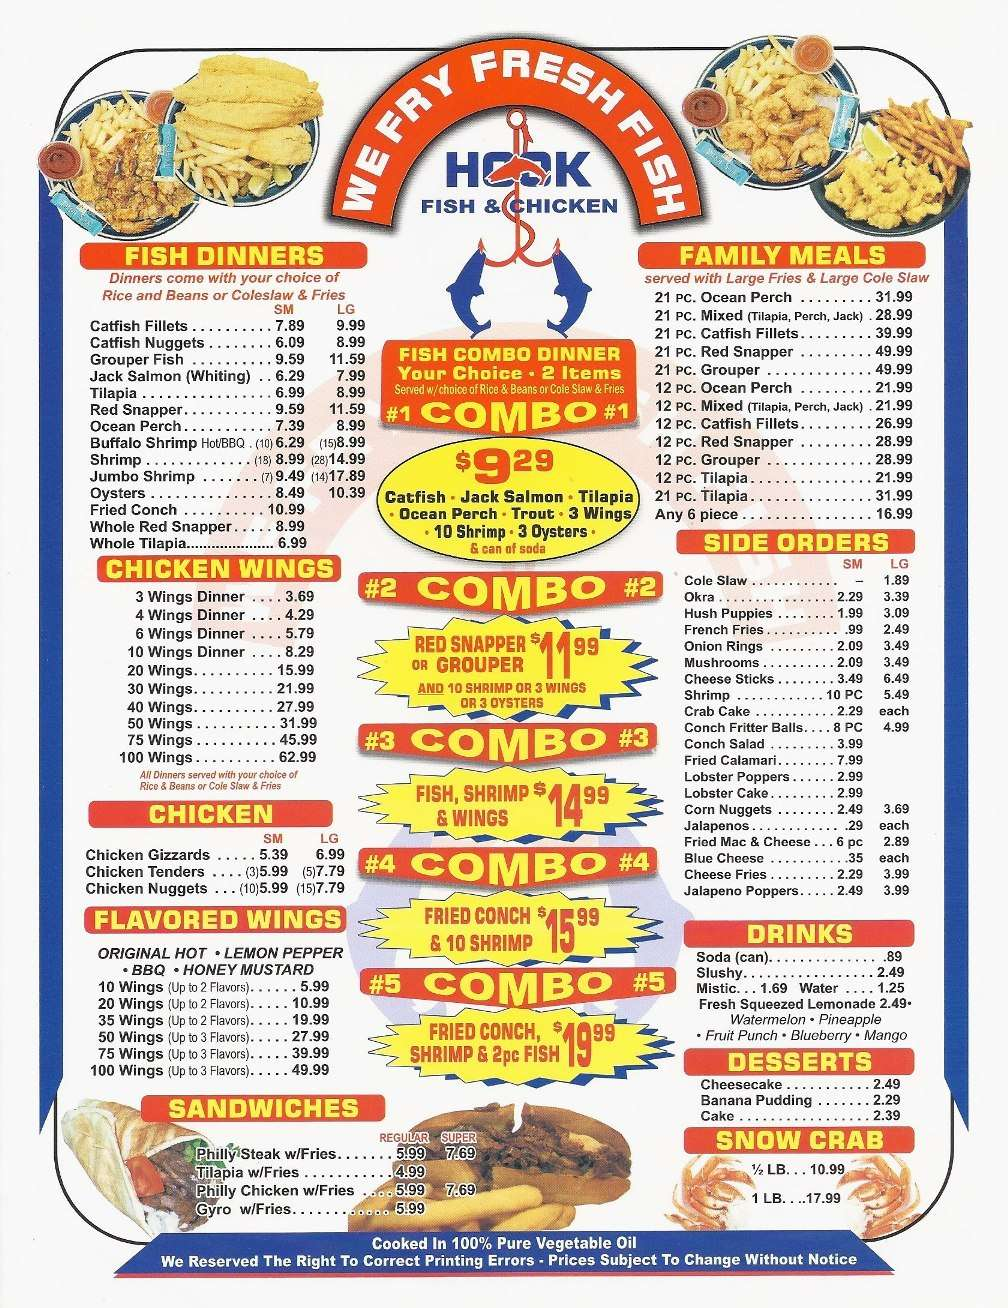 hook fish chicken menu menu for hook fish chicken